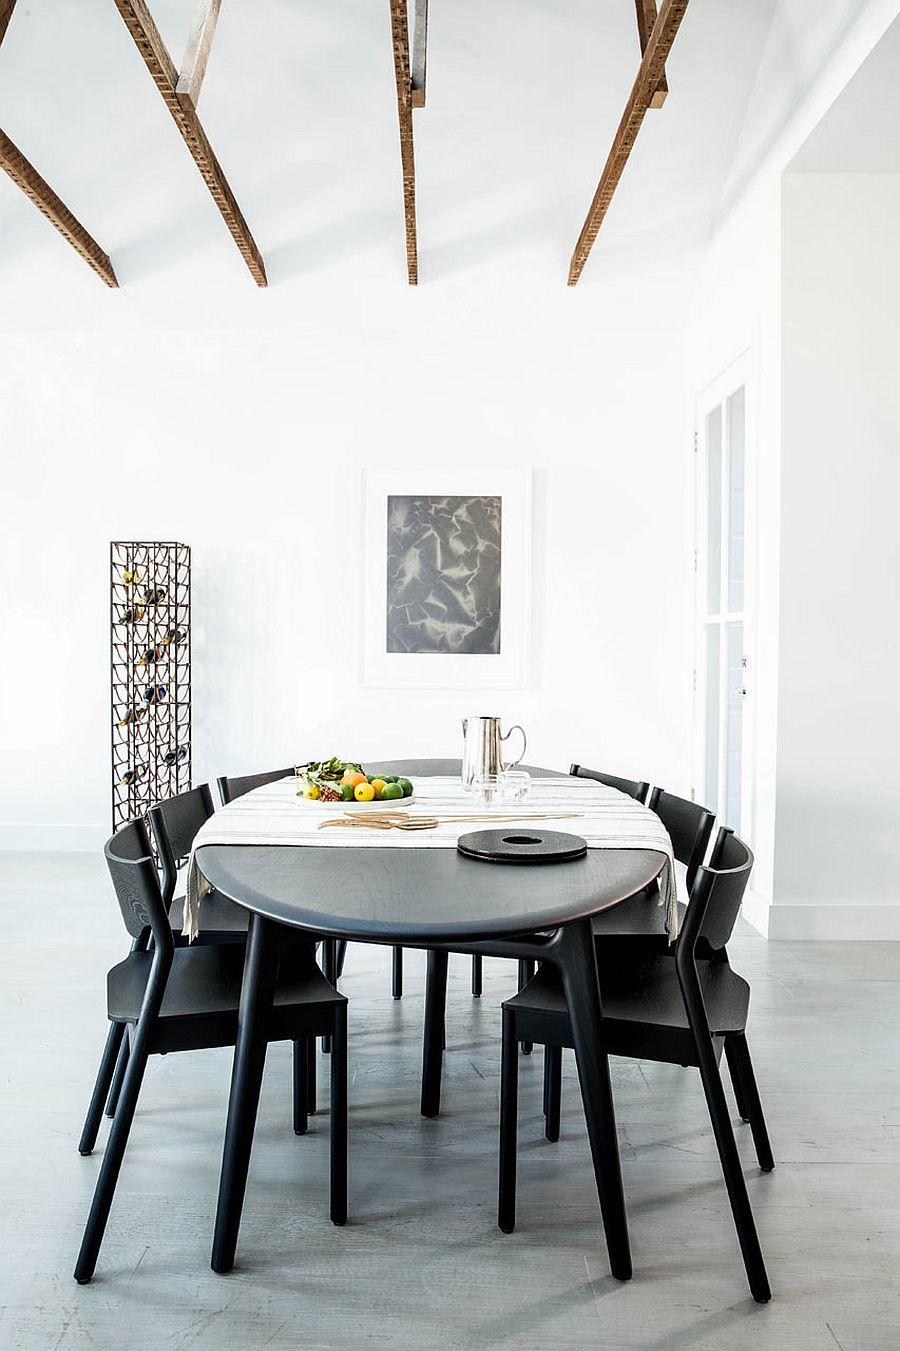 Stackable dining table chairs offer a versatile decorating arrangement inside the apartment